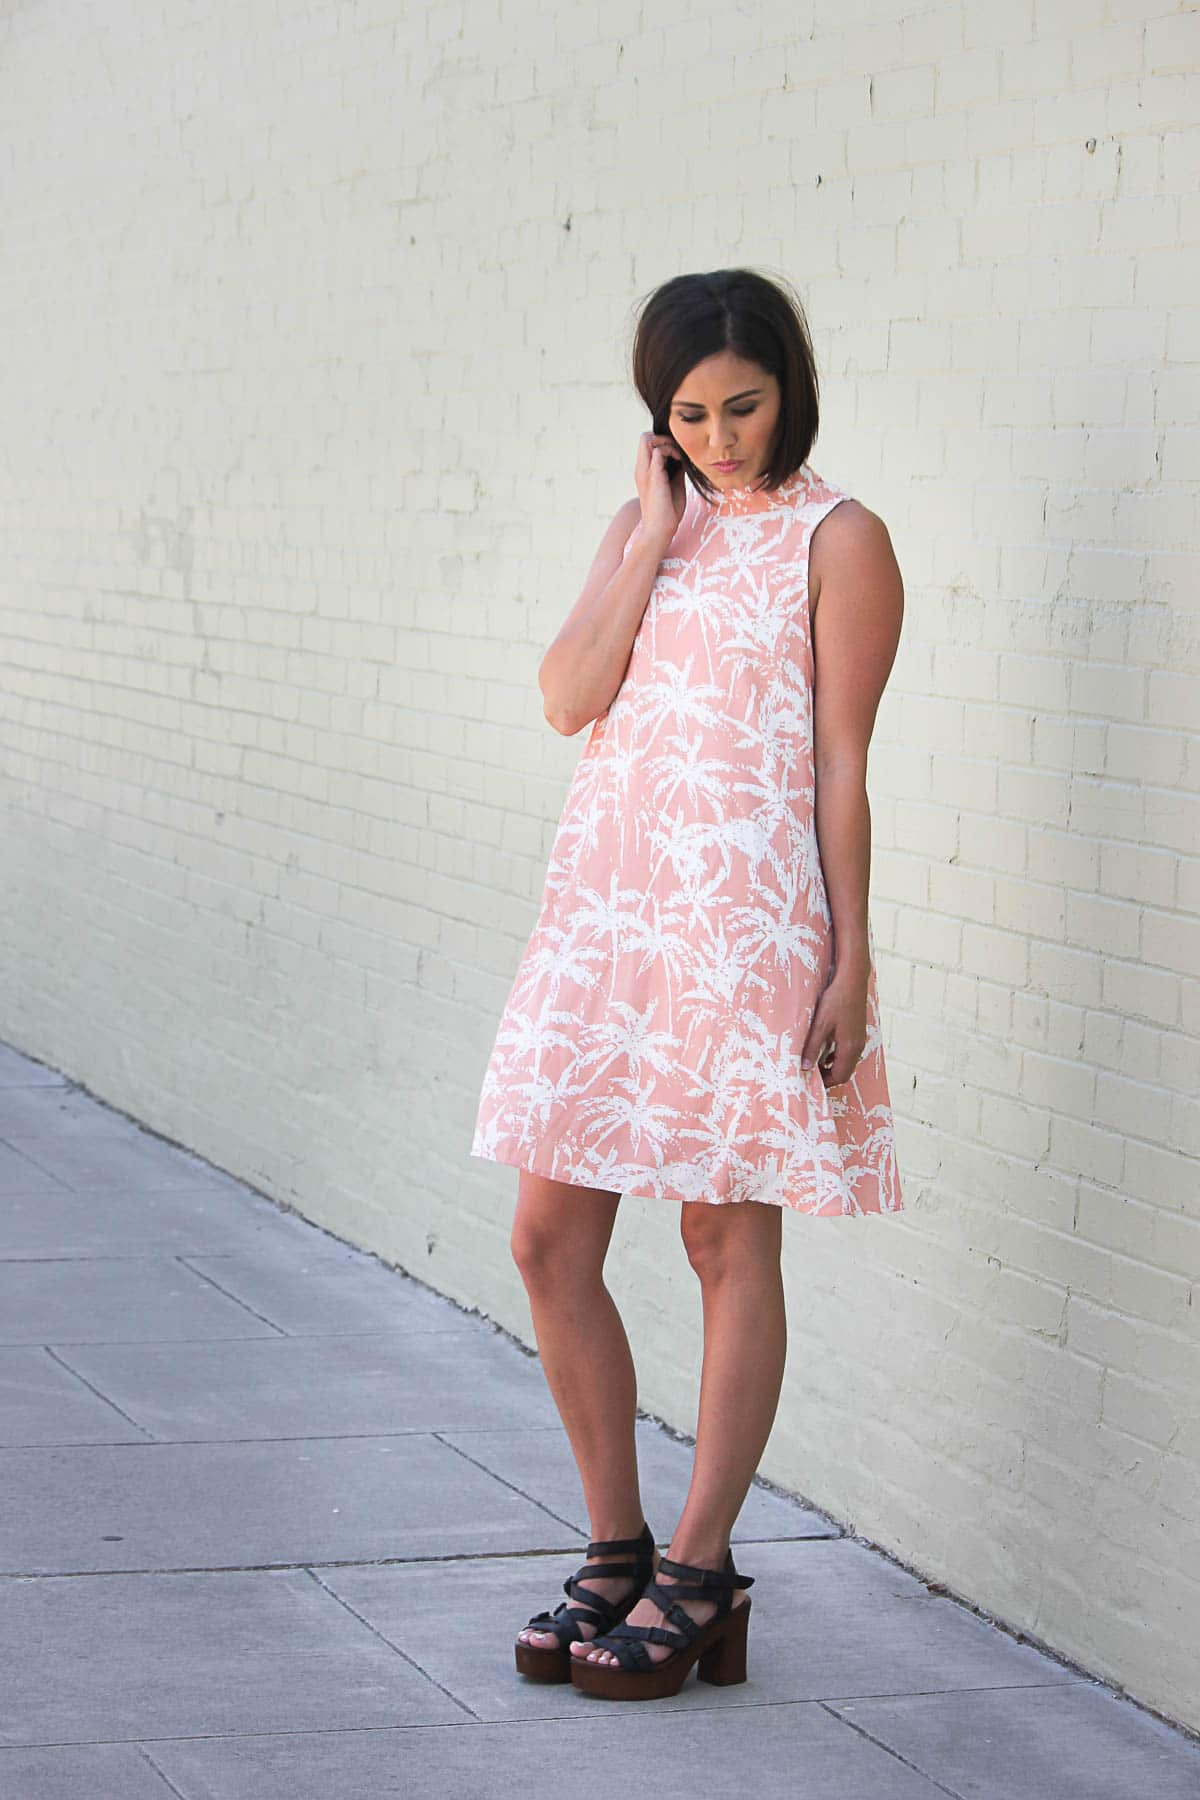 Summer Dress with Palm Trees from Tobi